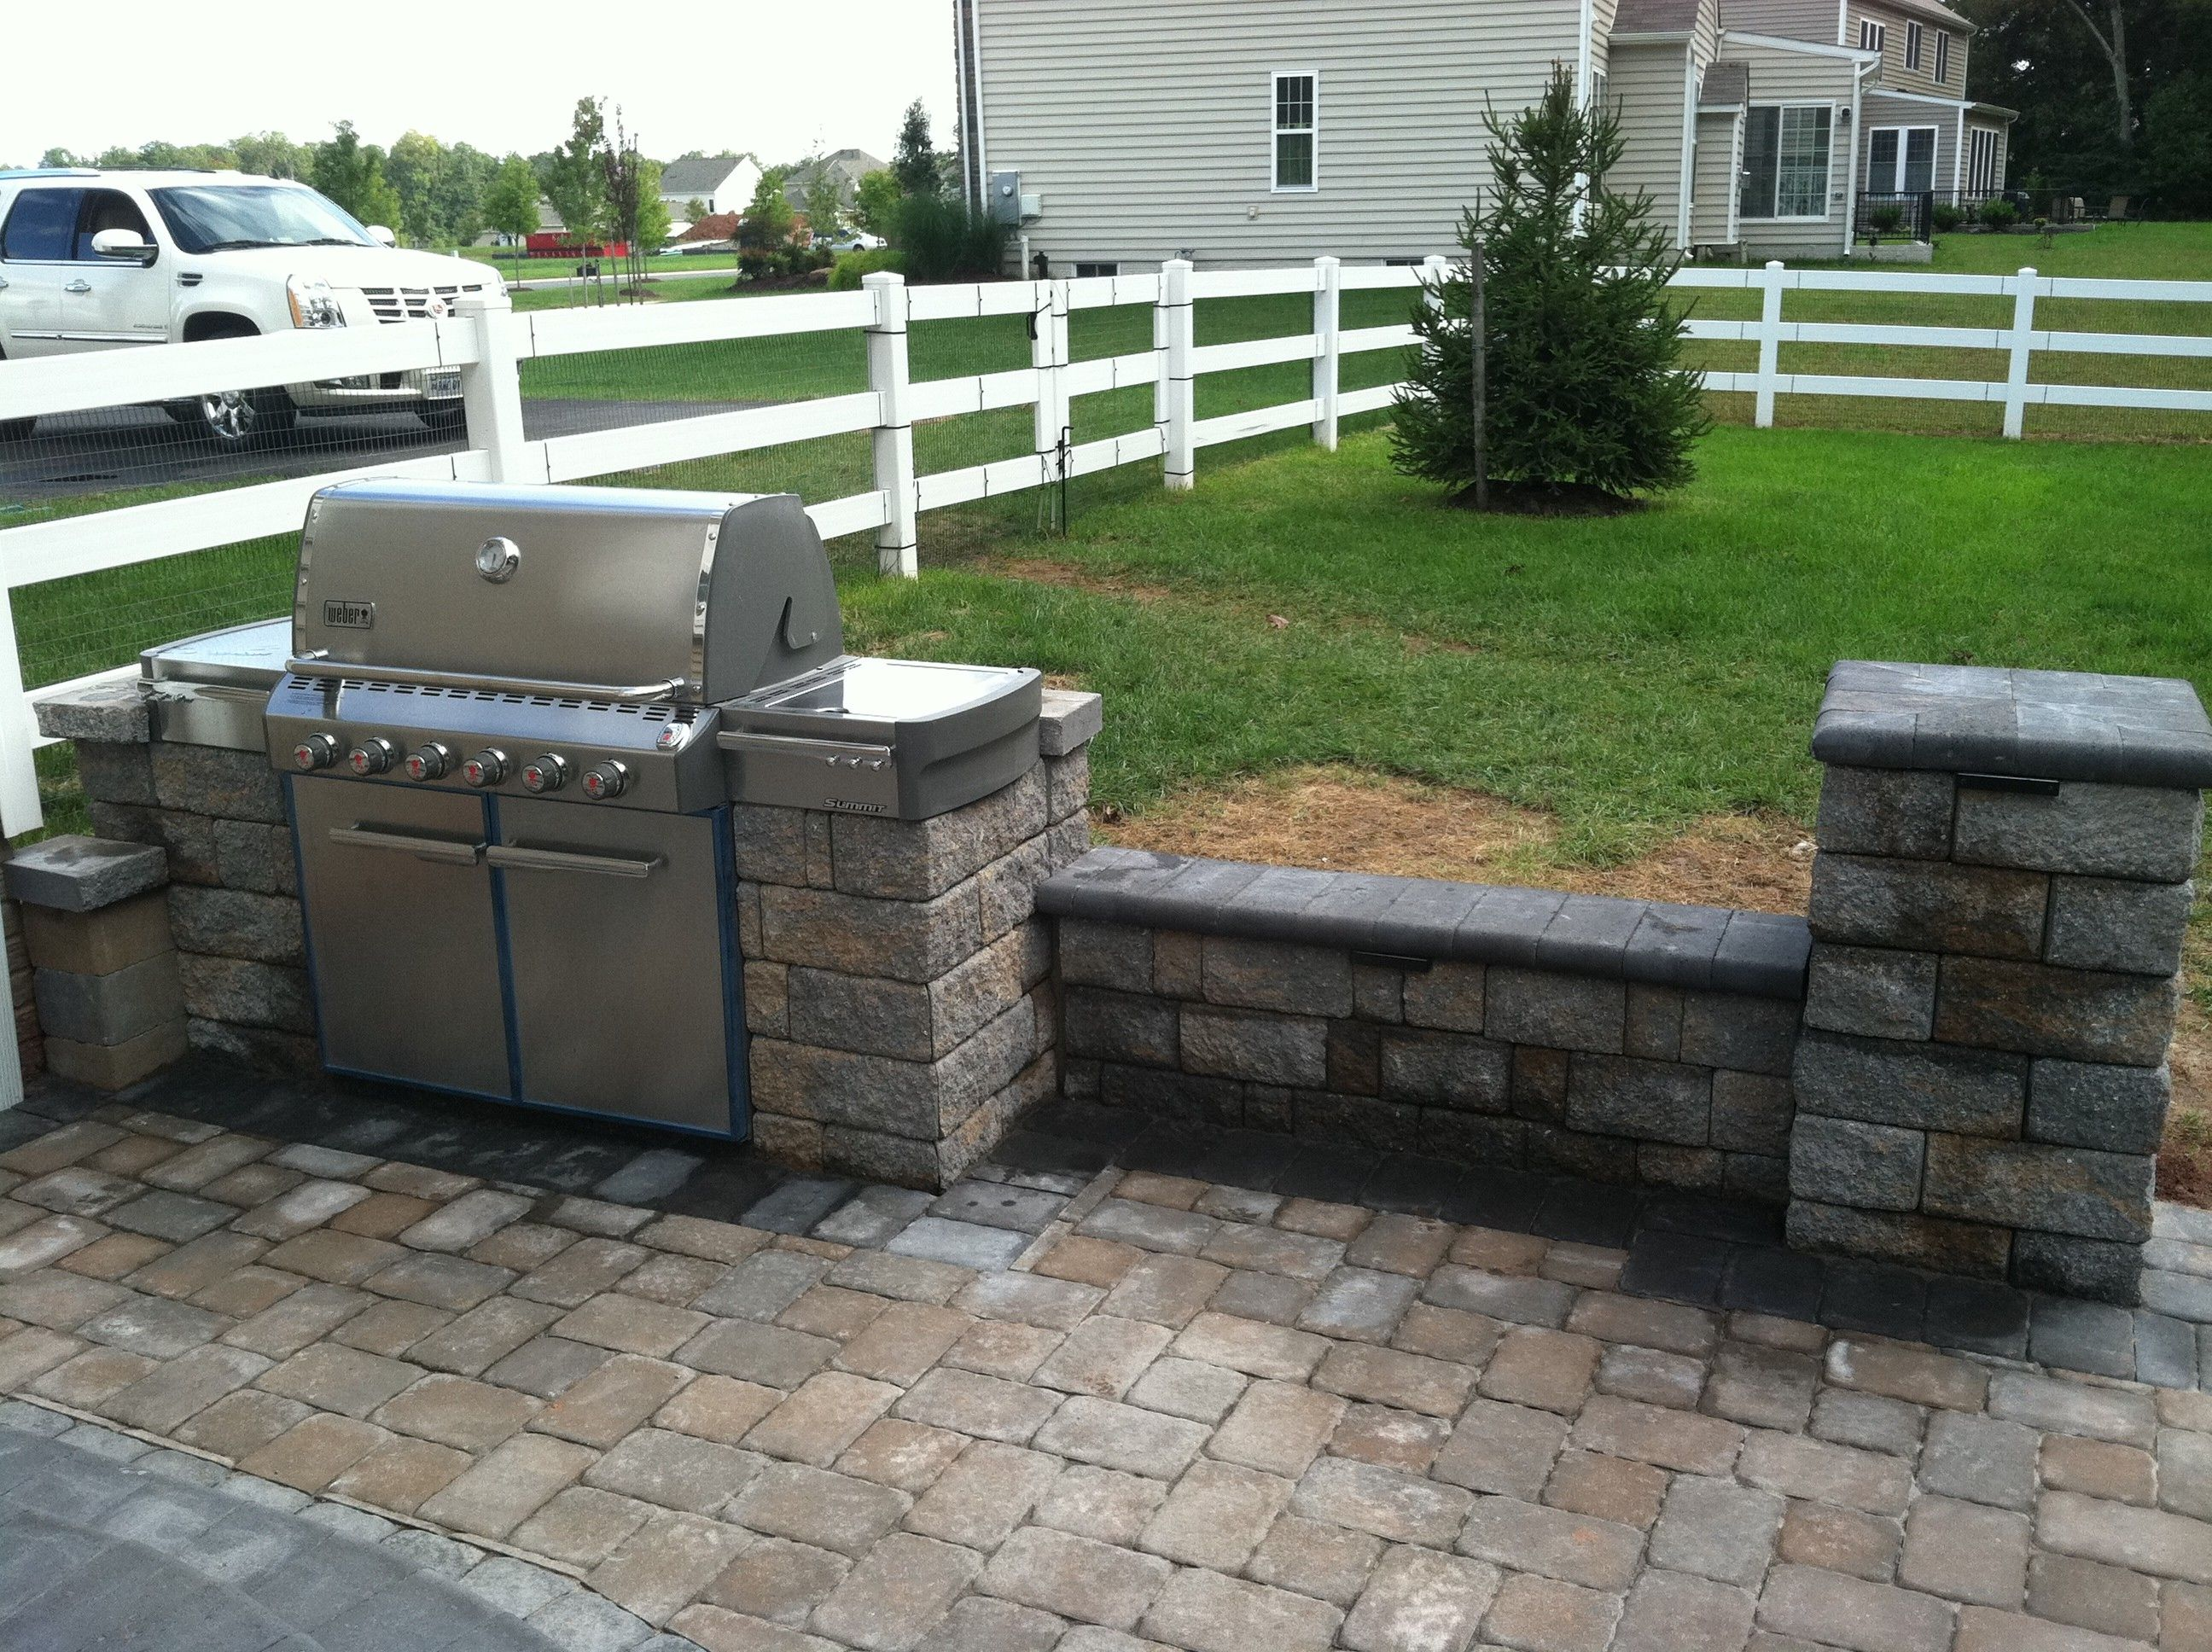 Ep Henry Paver patio with built in grill Coventry sitting wall and